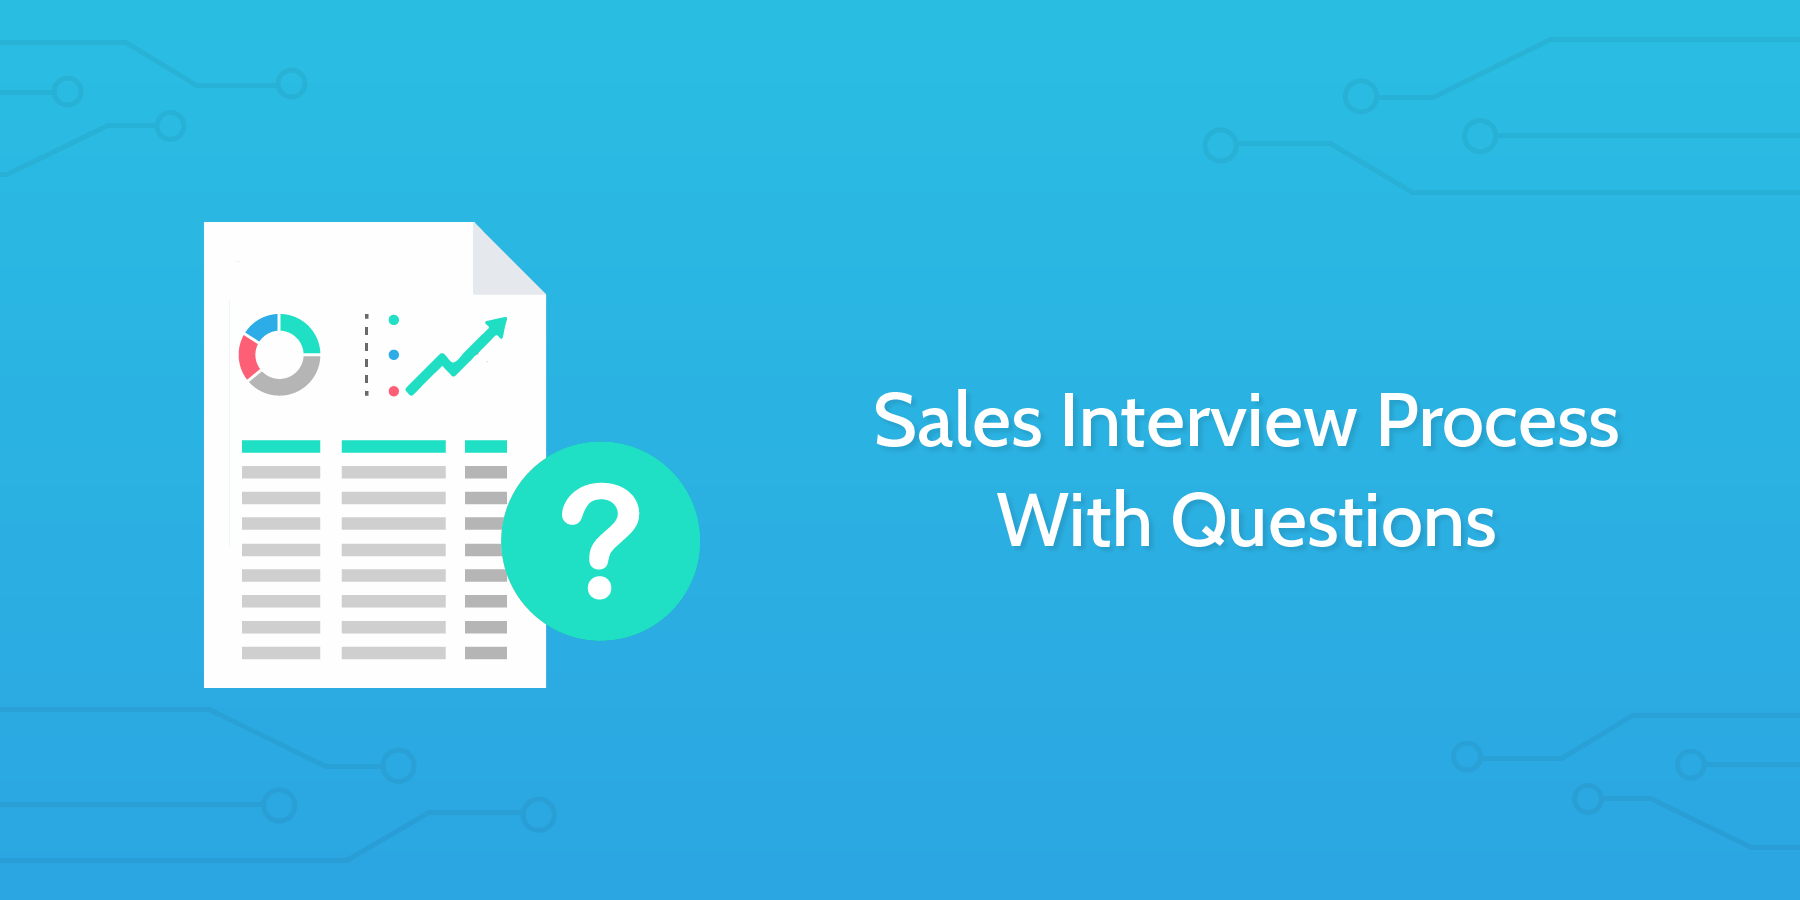 Sales Interview Process With Questions